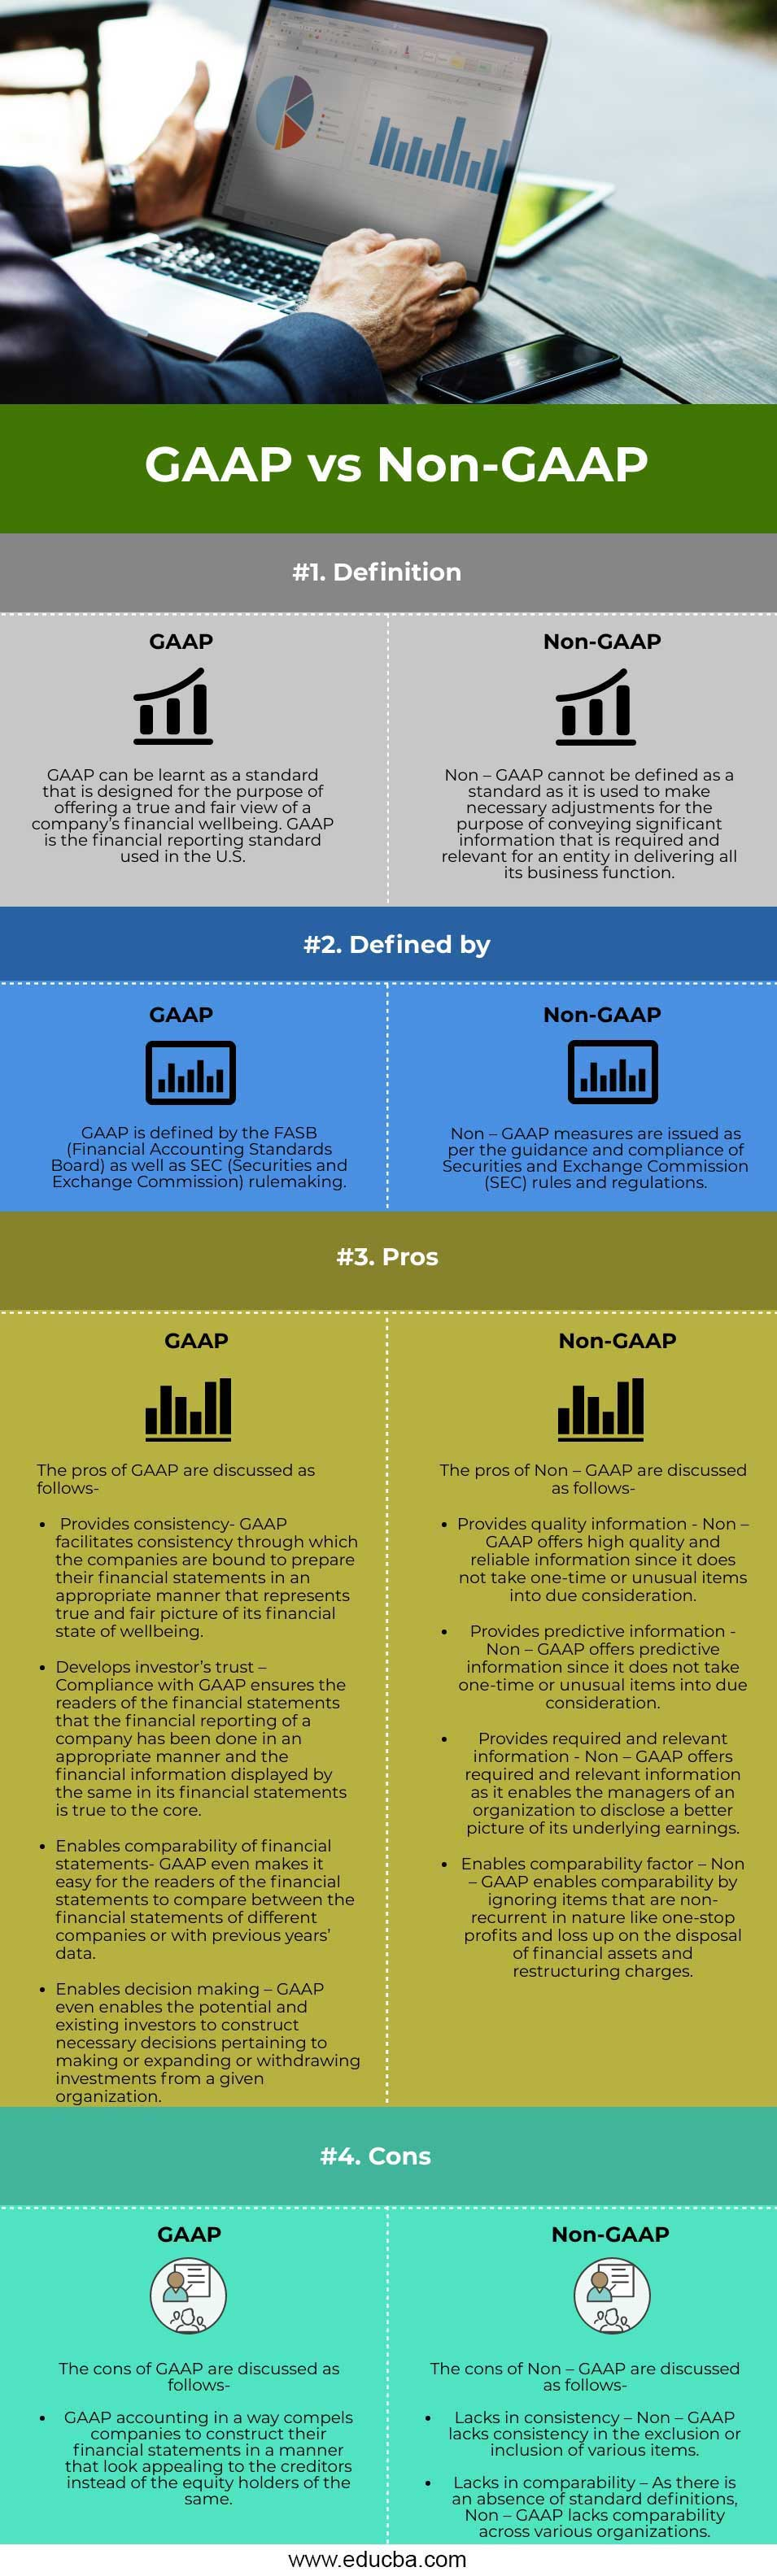 GAAP-vs-Non-GAAP-info